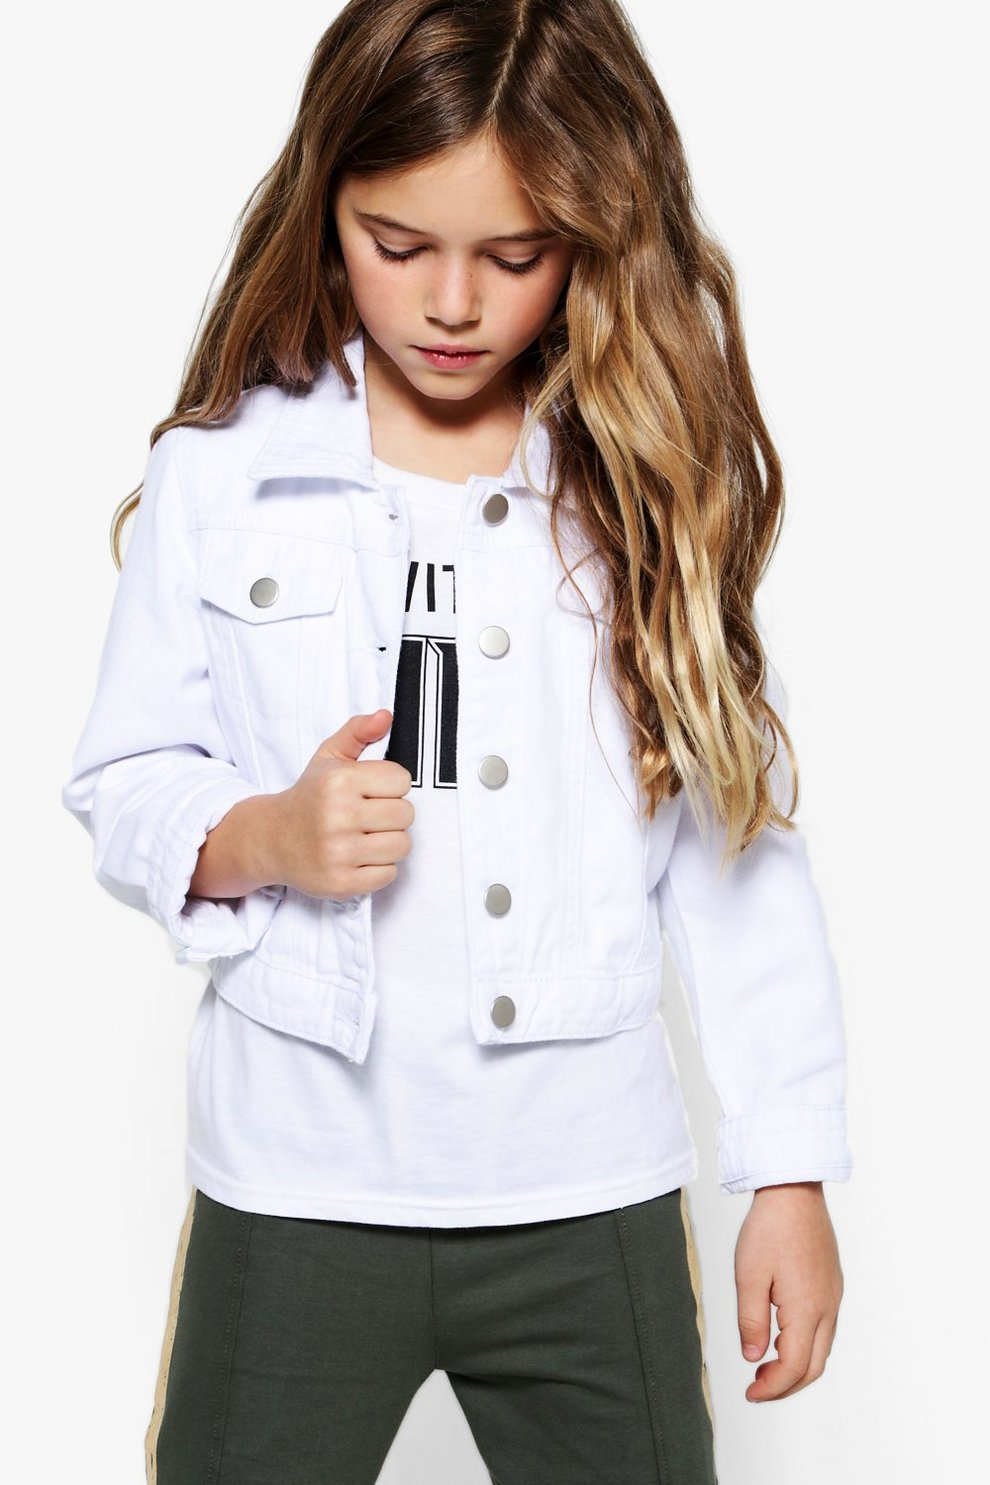 fdd3de8994f6 Girls White Denim Jacket